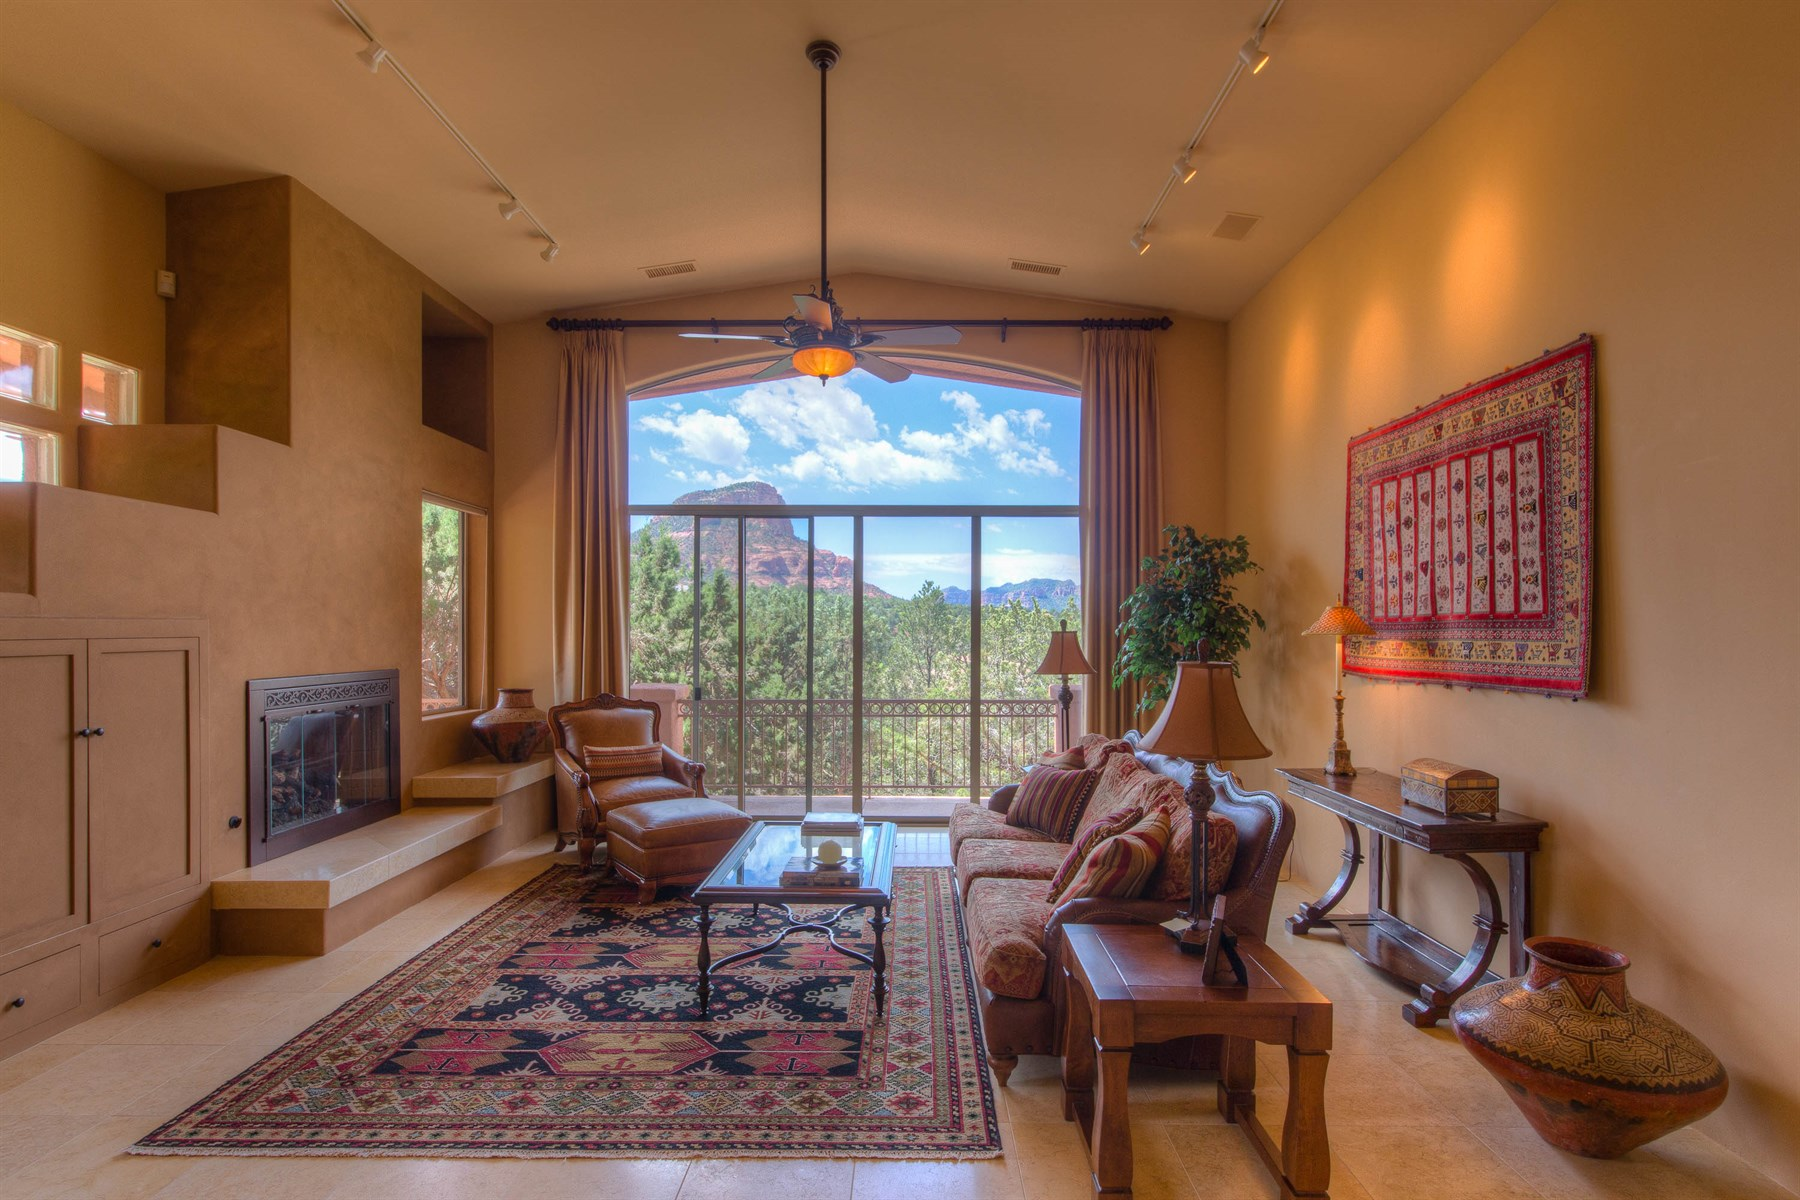 Single Family Home for Sale at Beauty, Serenity, and Privacy 141 N Palisades DR Sedona, Arizona, 86336 United States